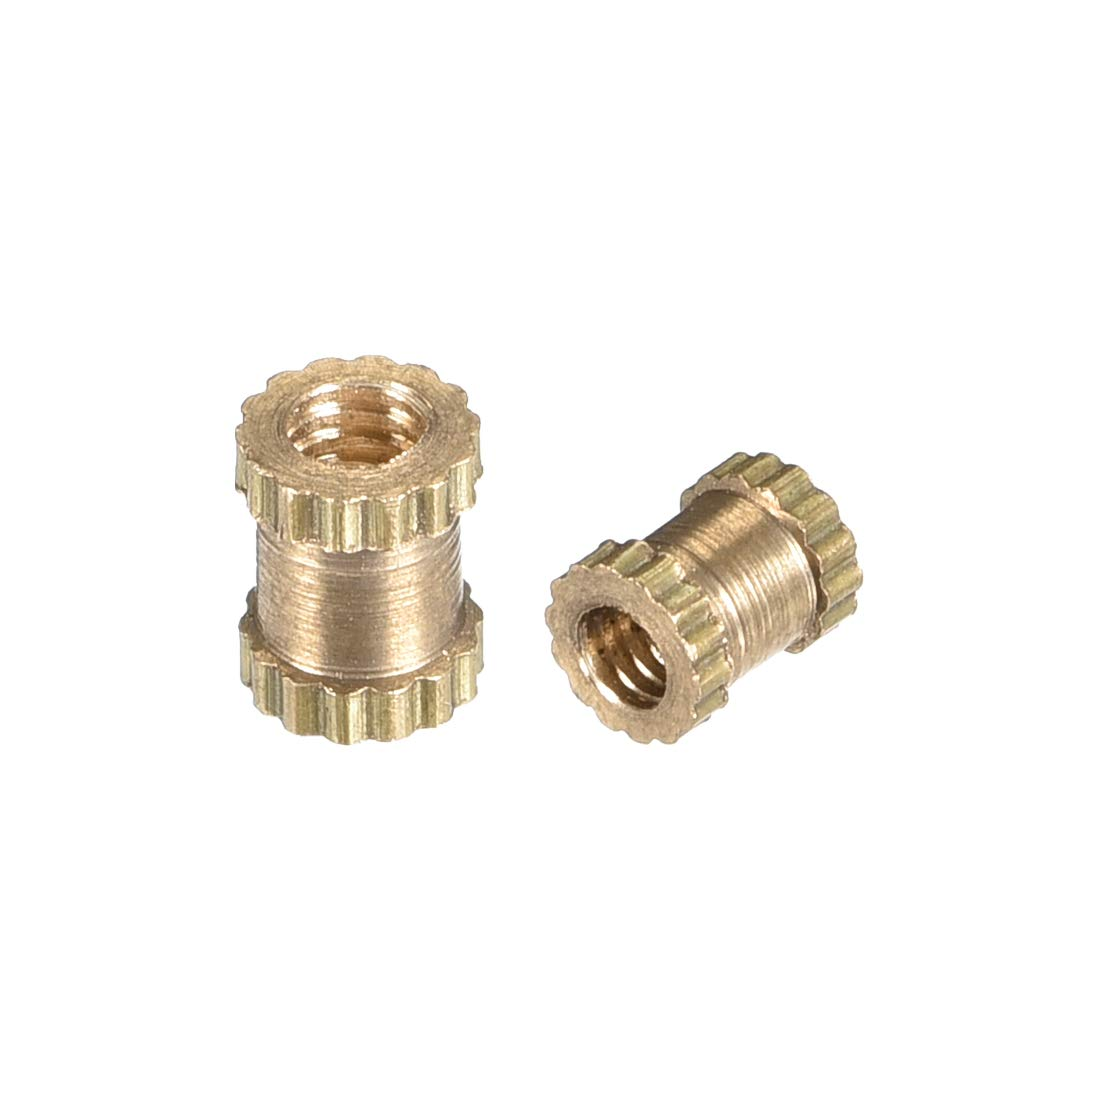 Female Thread Brass Embedment Assortment Kit 100 Pcs L uxcell Knurled Insert Nuts x 4mm M3 x 4mm OD